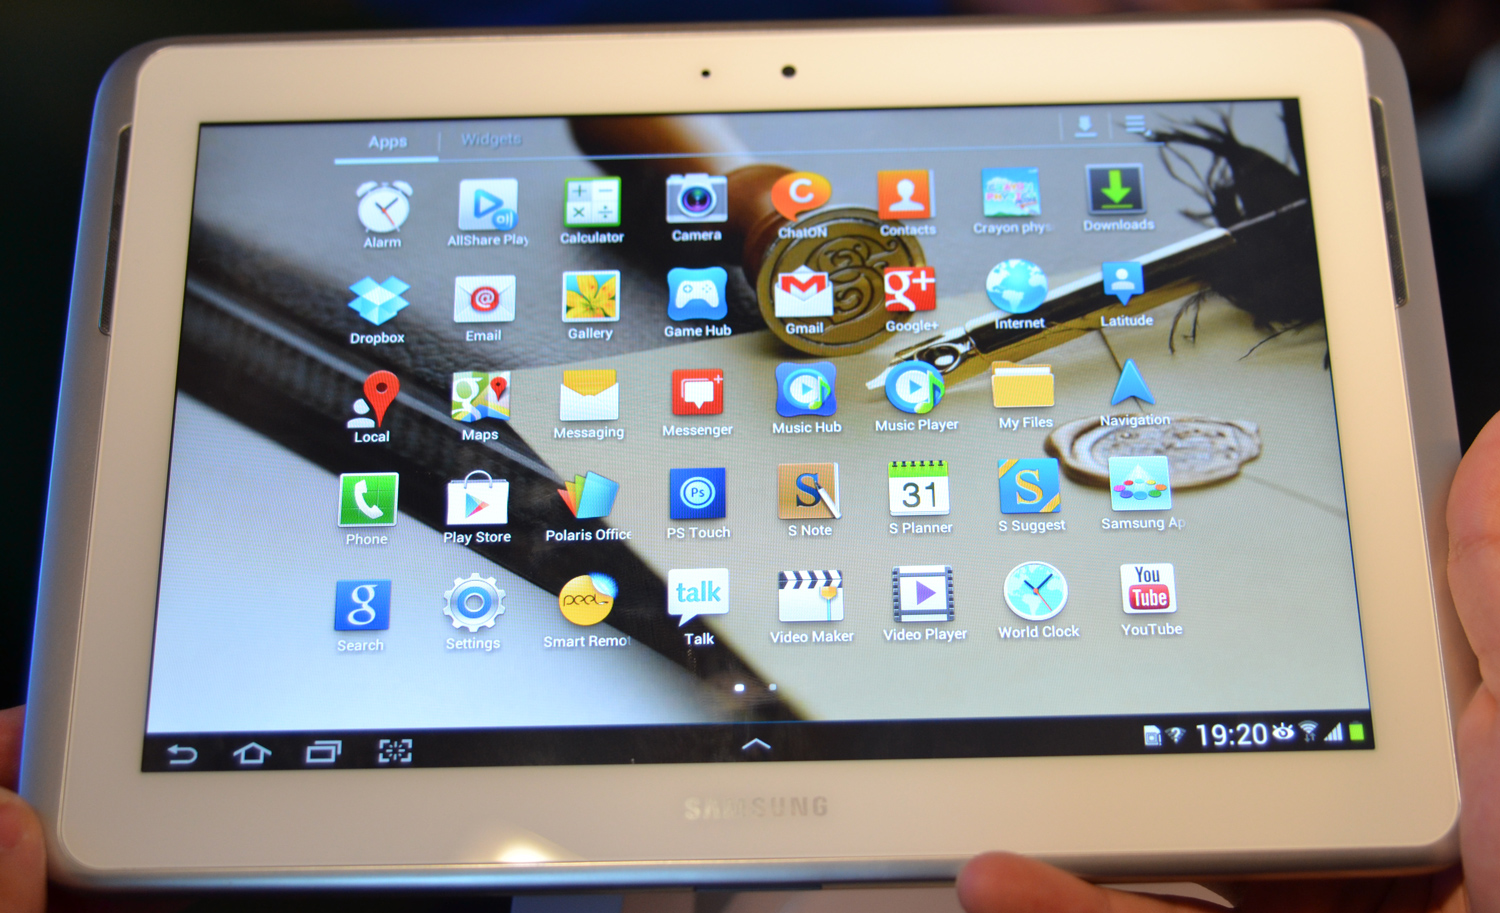 Samsung Galaxy Note 10.1 Quad Core Review